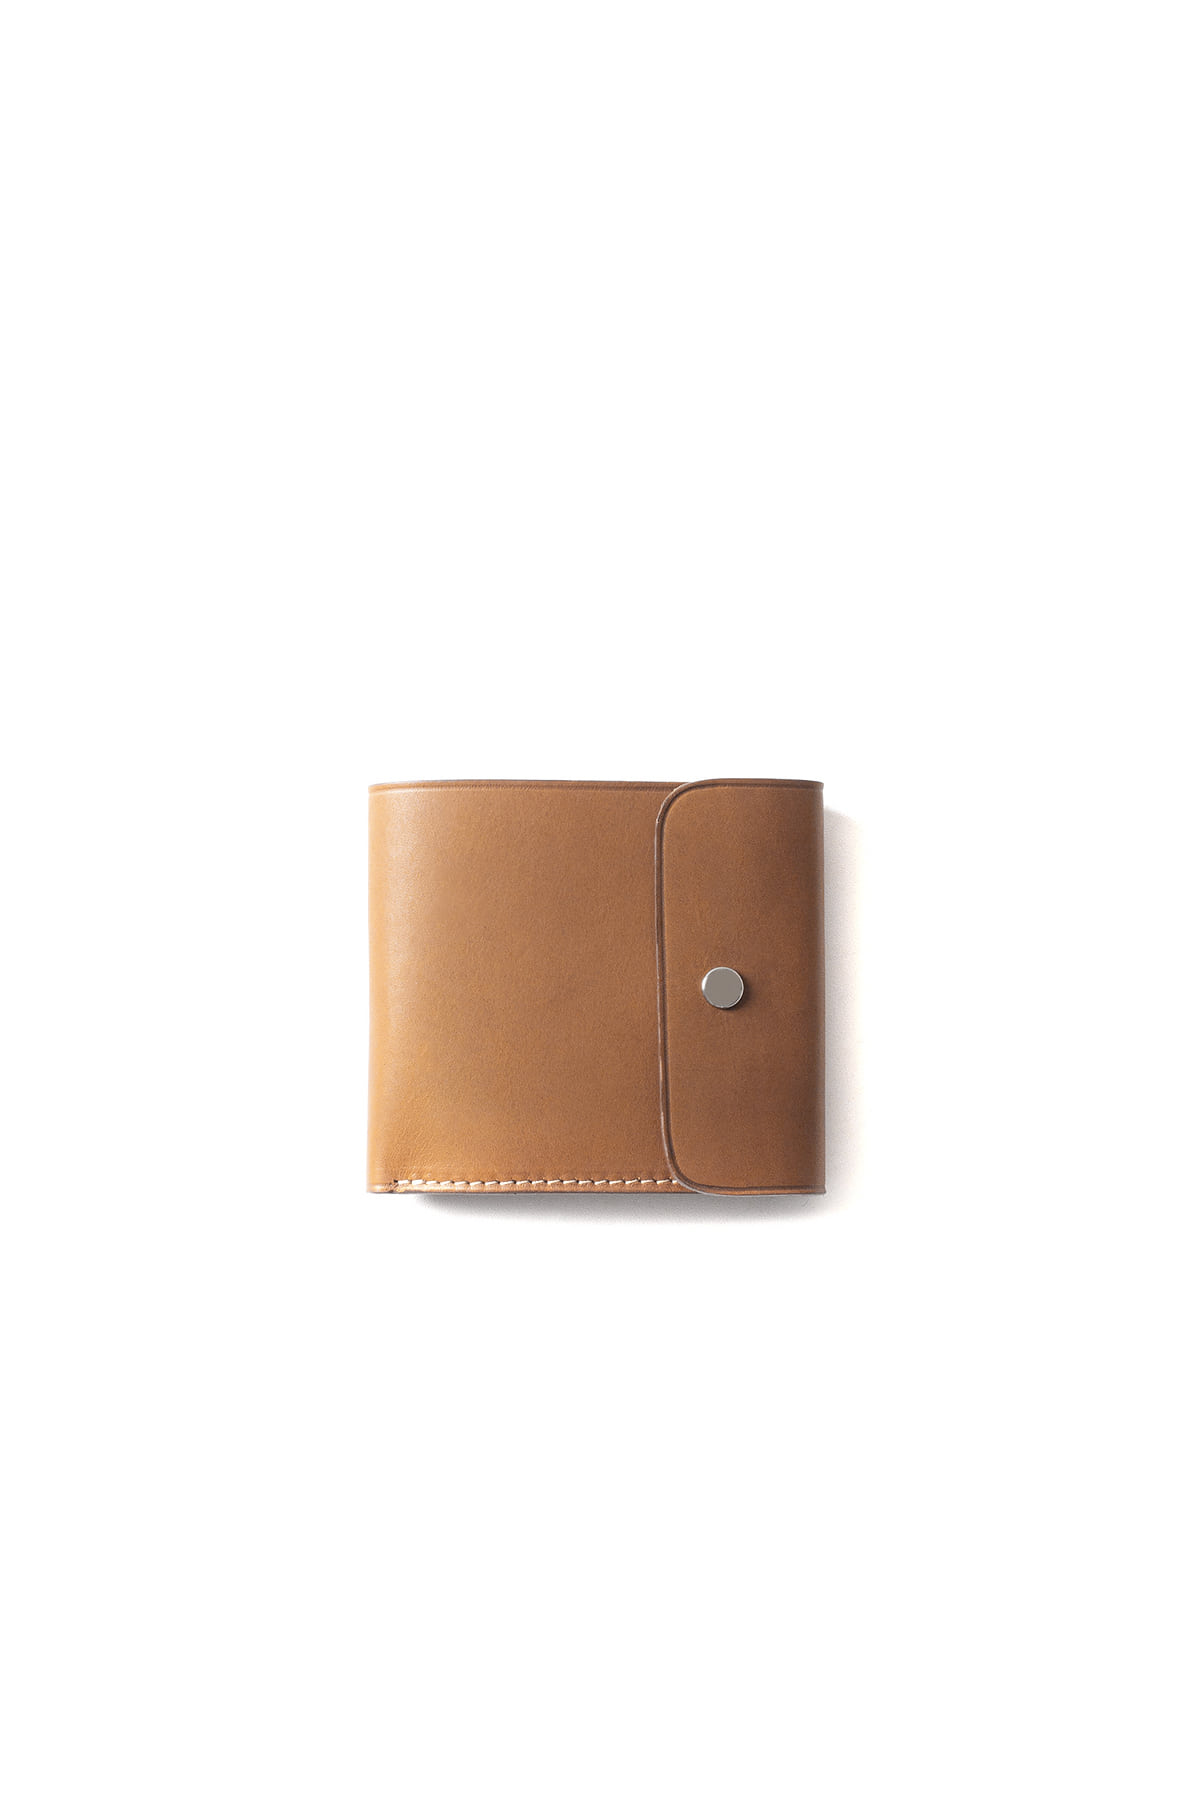 STEVE MONO : 09/6 Classic Pocket Wallet (Brown)